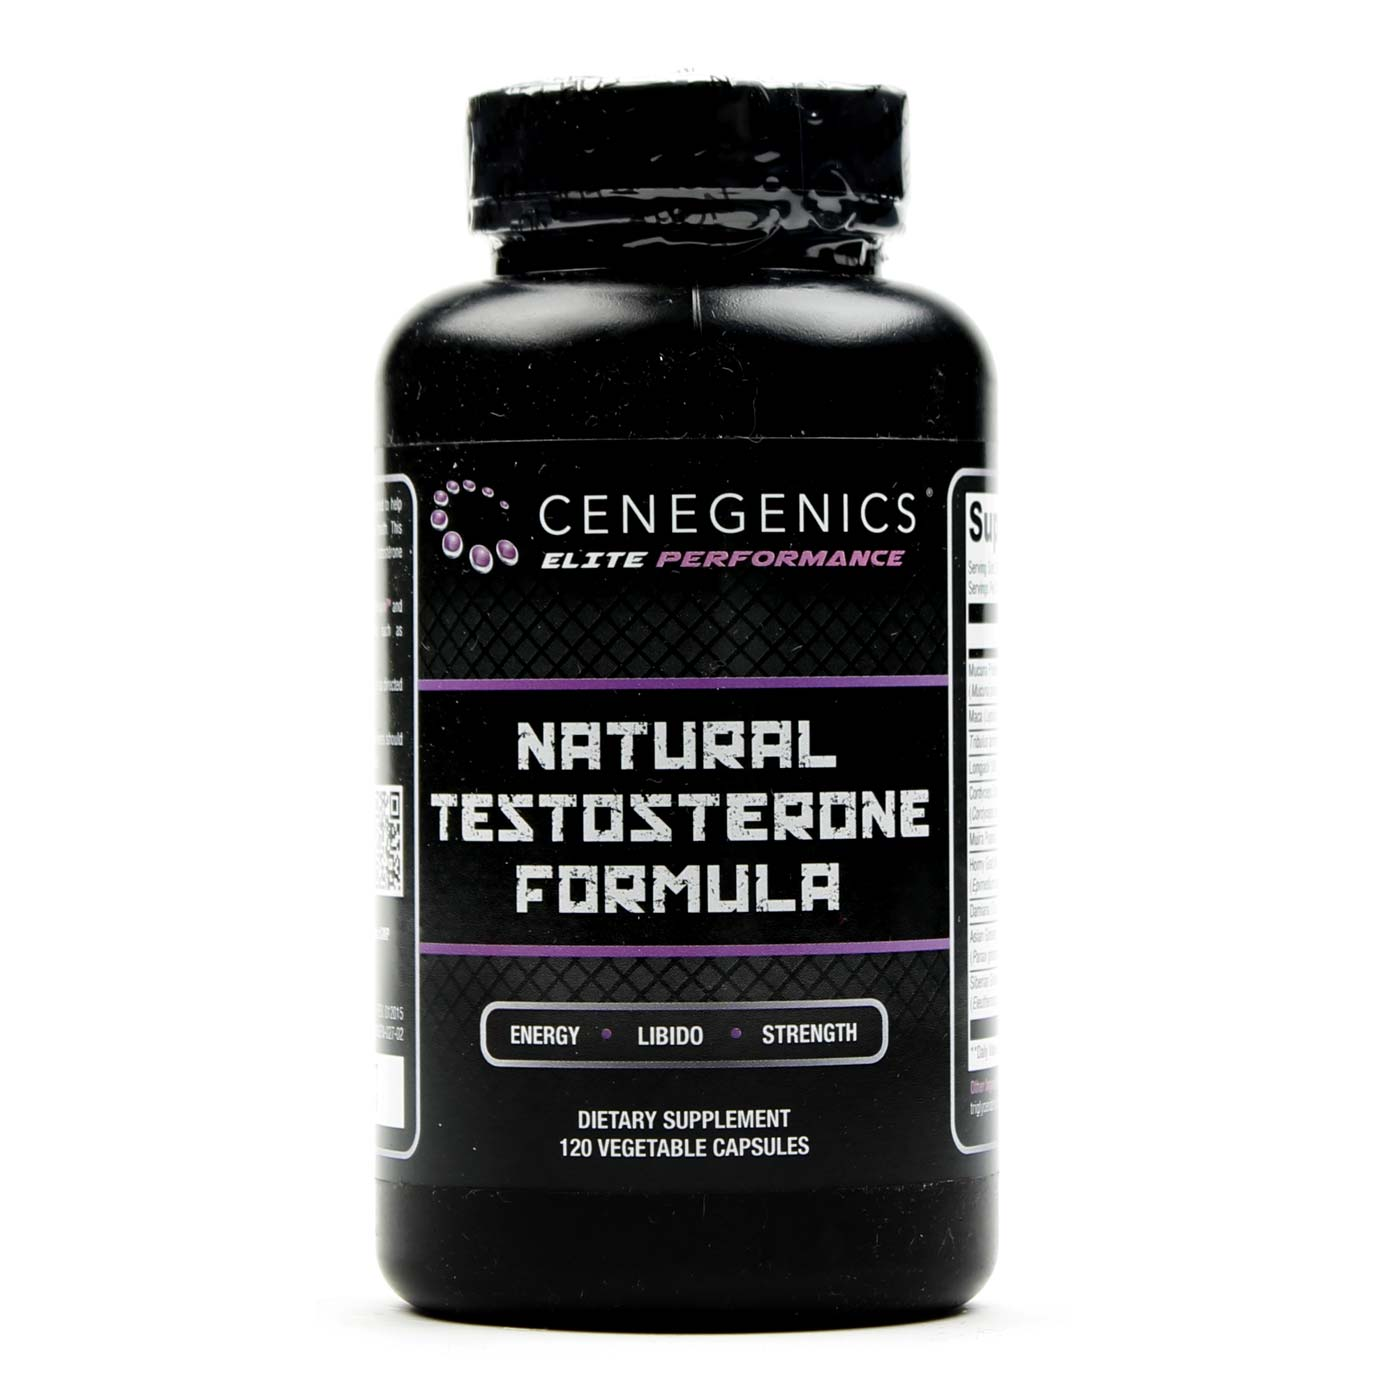 Cenegenics Natural Testosterone Formula - 120 Vegetable